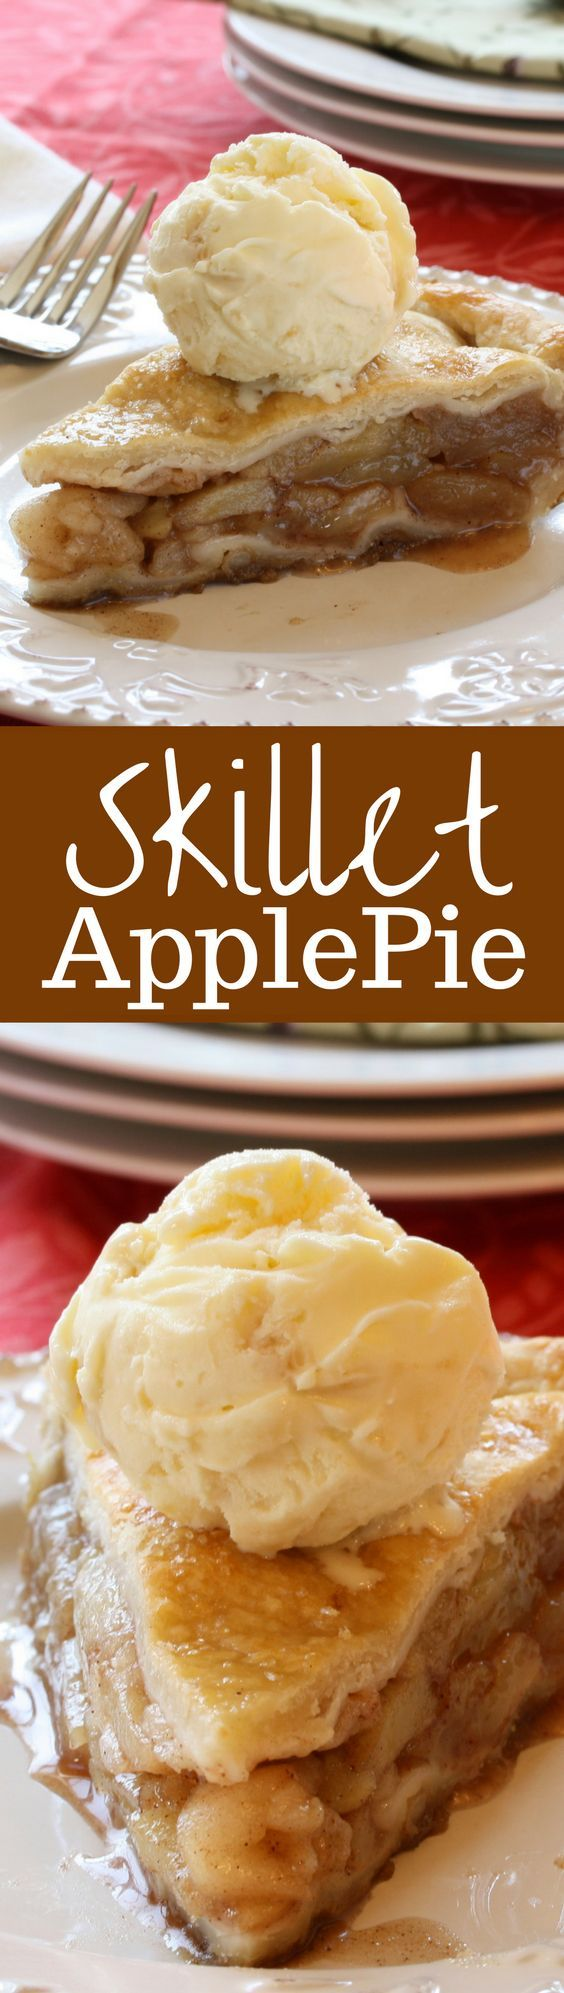 'Skillet Apple Pie' Saved from simplydessert.com - Wendy Schultz - Pastries + Pies + Tarts.